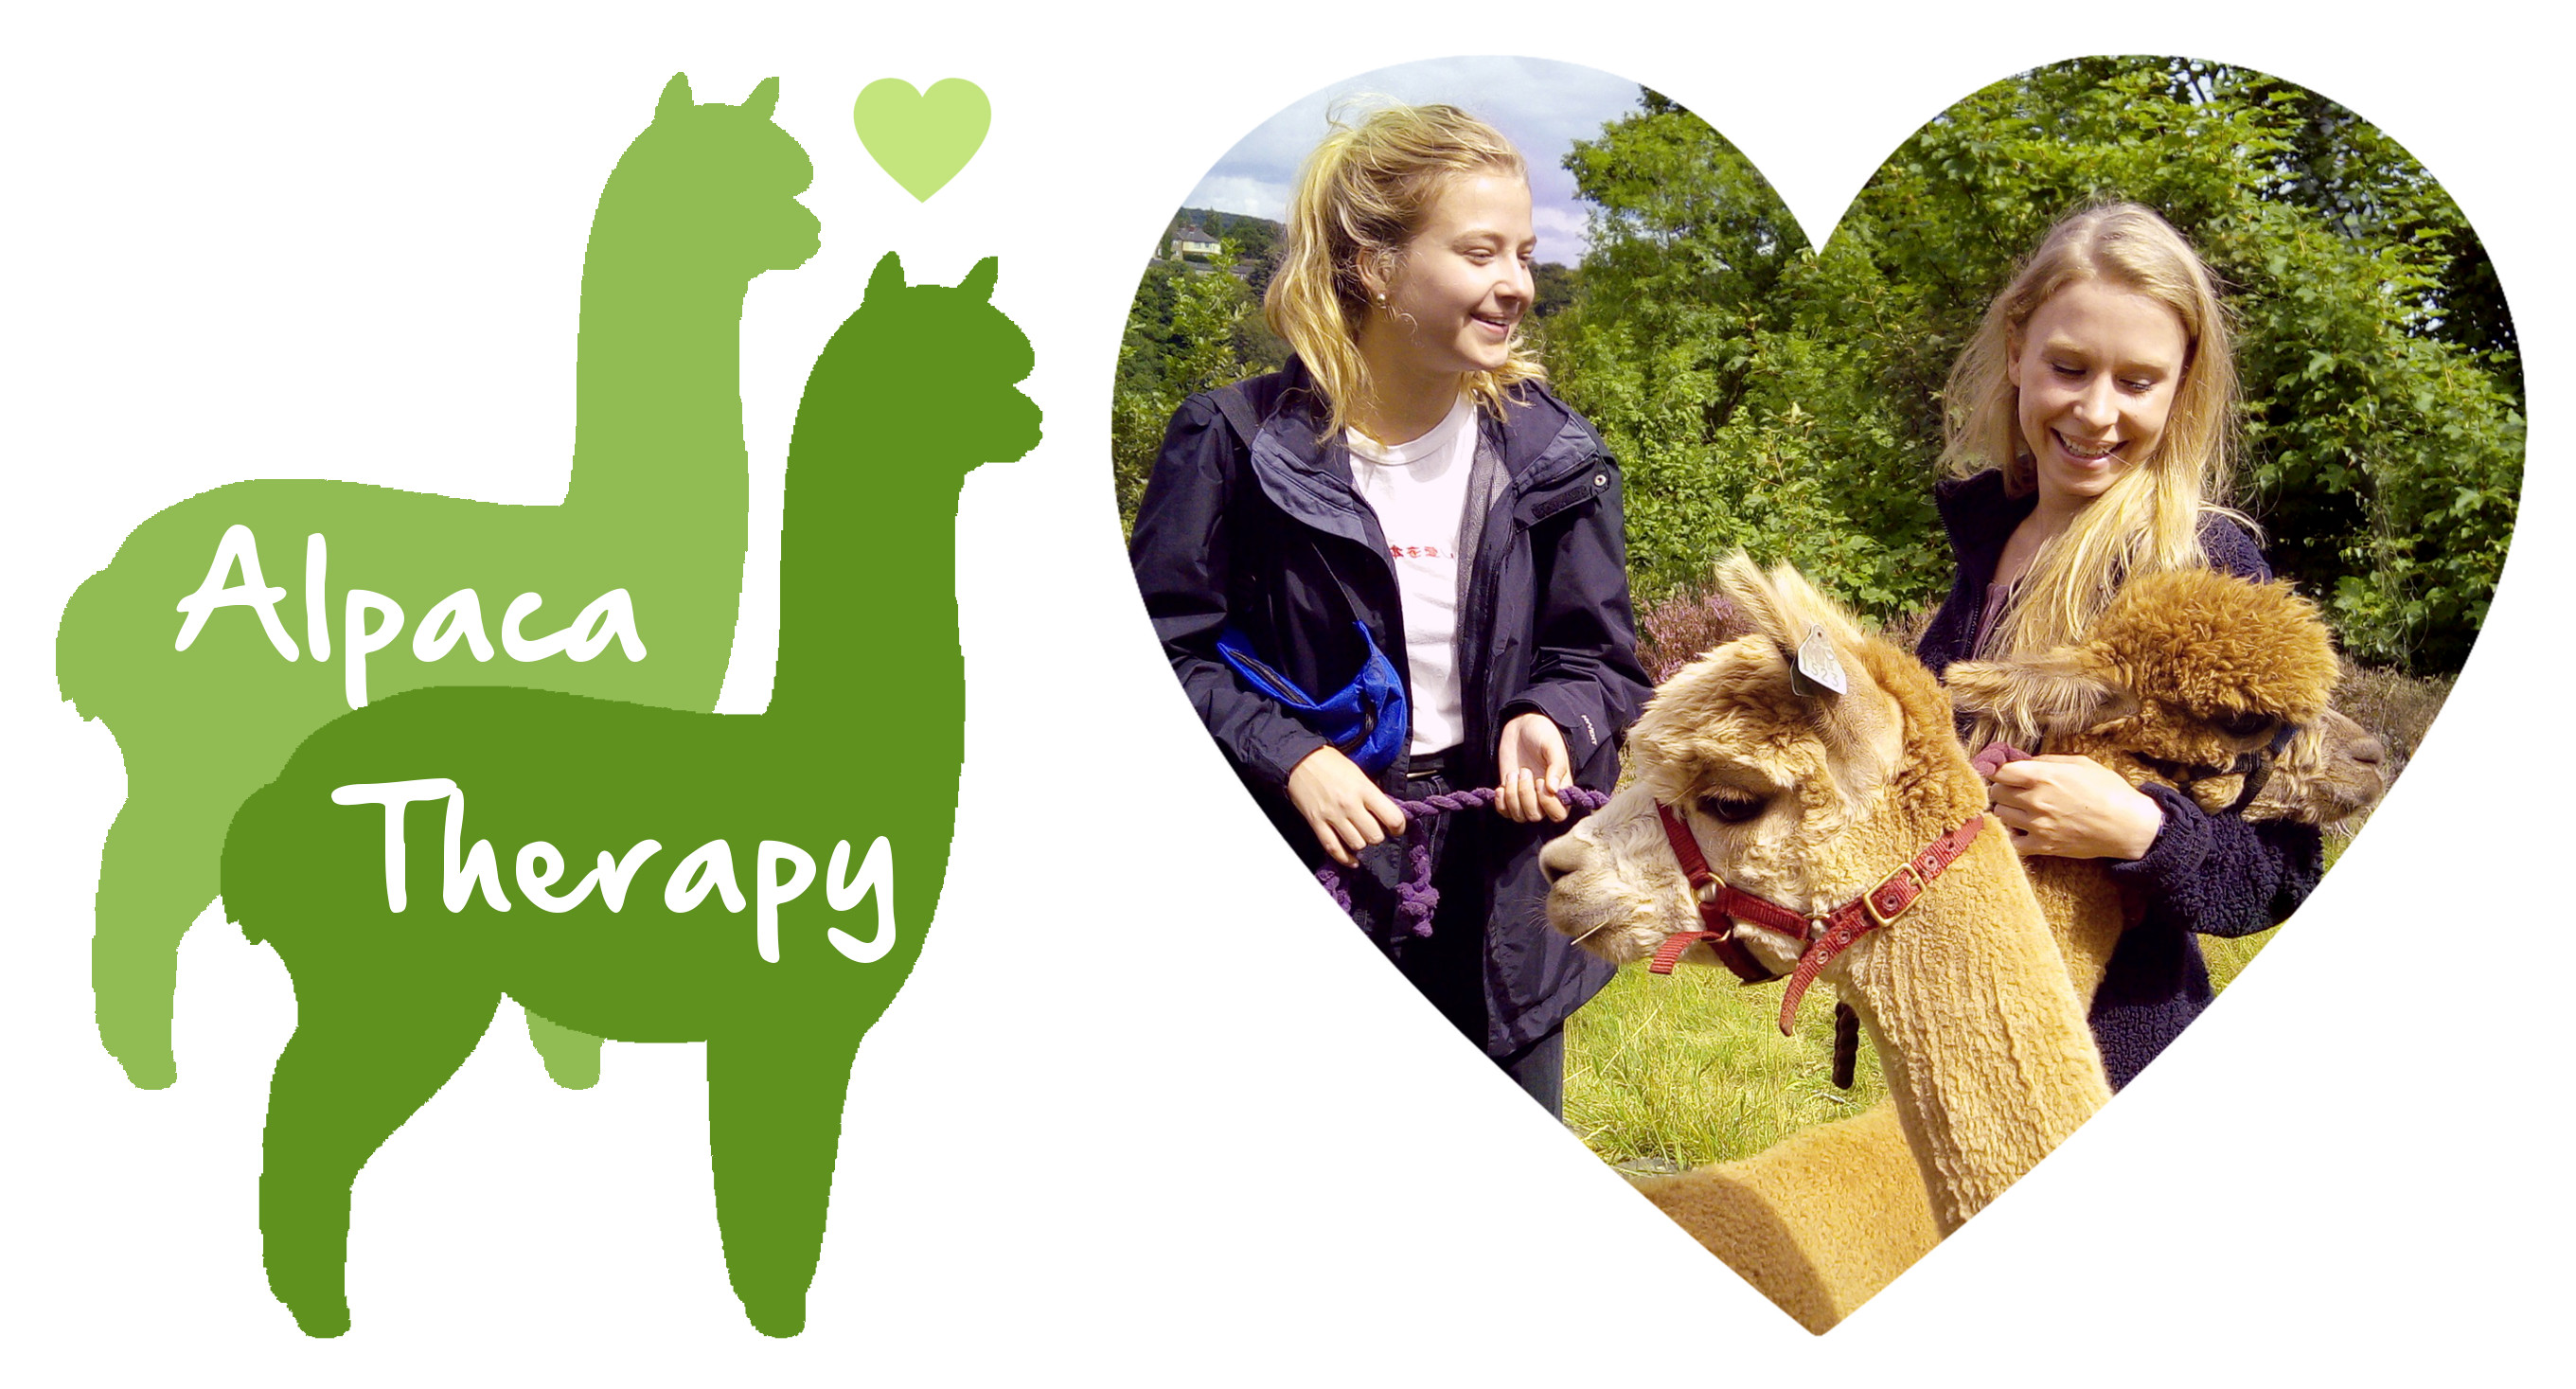 Holly Hagg Alpaca Therapy ad